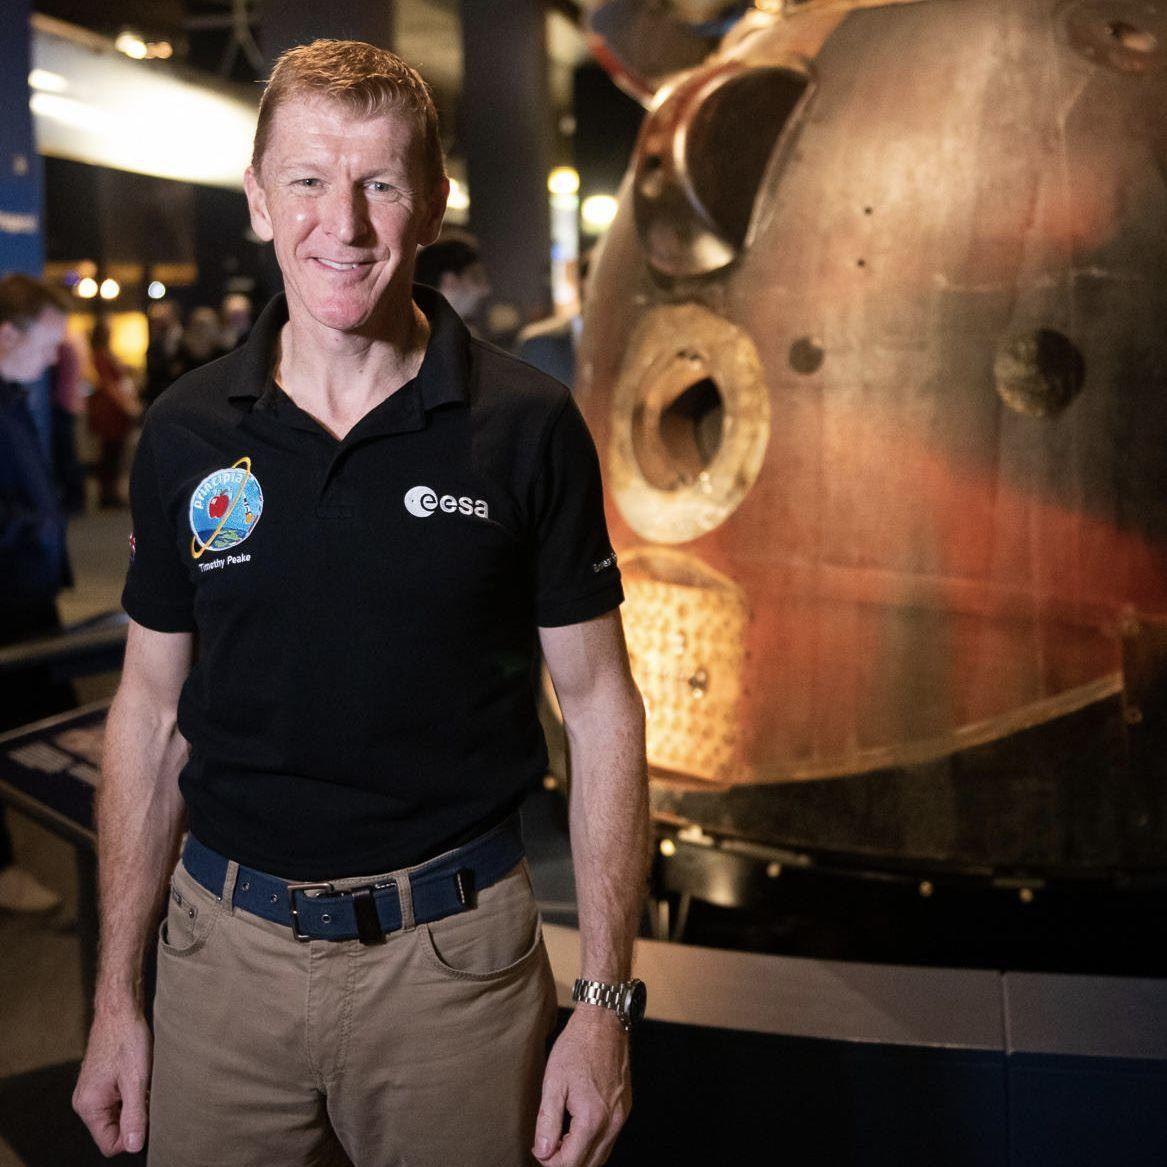 More than 1.3m people saw the Soyuz module in which ESA astronaut @astro_timpeake returned to Earth during its 20-month tour of the UK.  Read more:  https://www. esa.int/ESA_in_your_co untry/United_Kingdom/UK_tour_of_Tim_Peake_s_descent_module_attracts_1.3m_visitors &nbsp; … <br>http://pic.twitter.com/khbD9osYnL